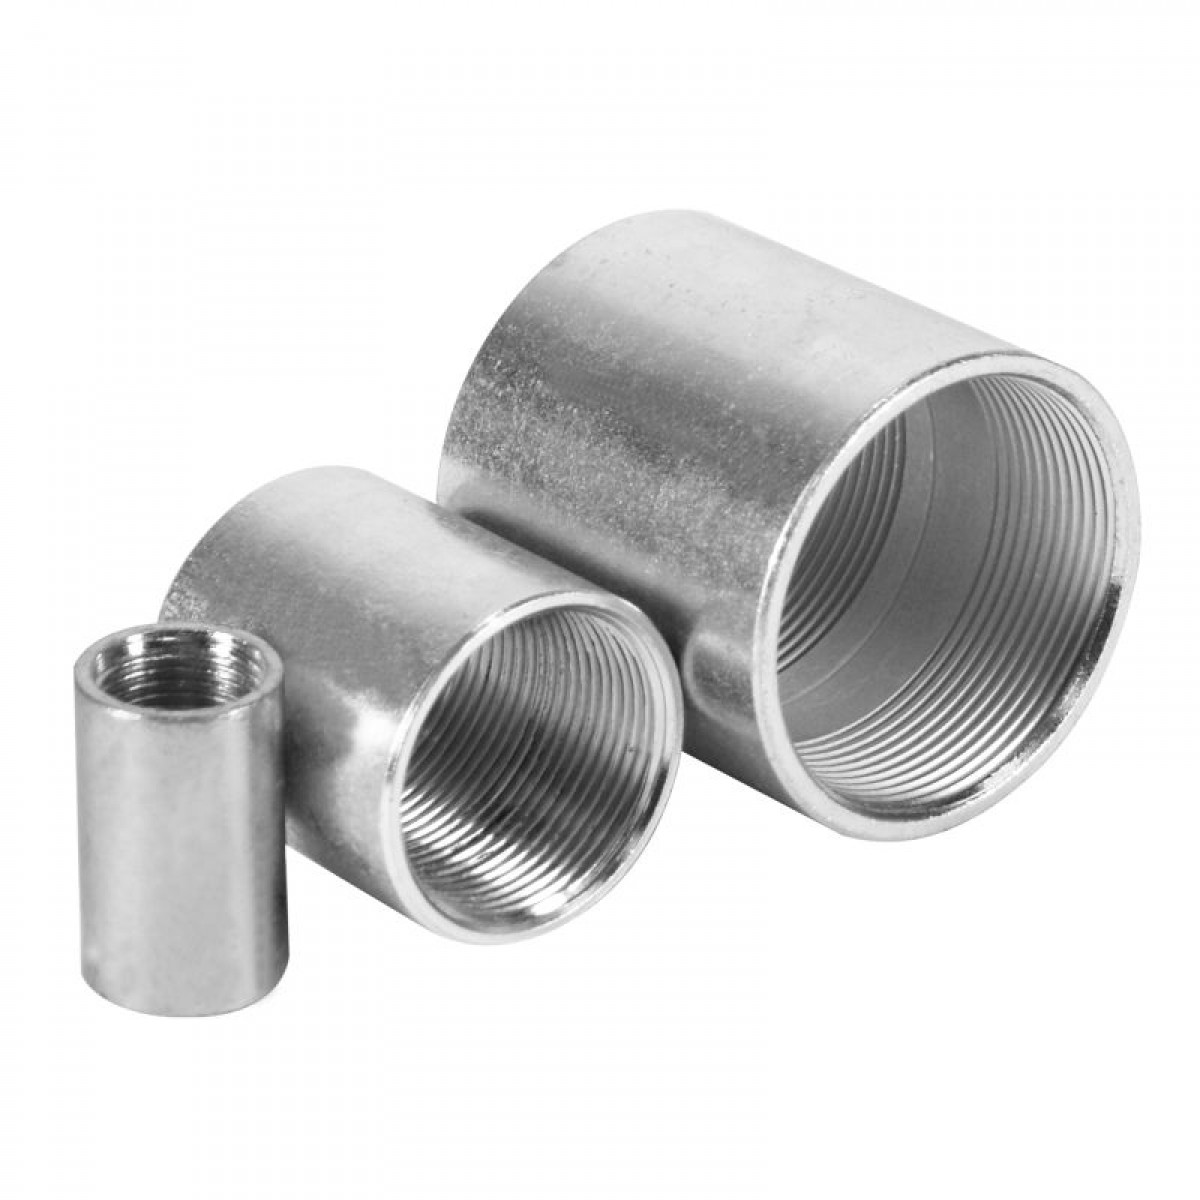 Rigid Threaded Couplings Rigid Fittings Electrical